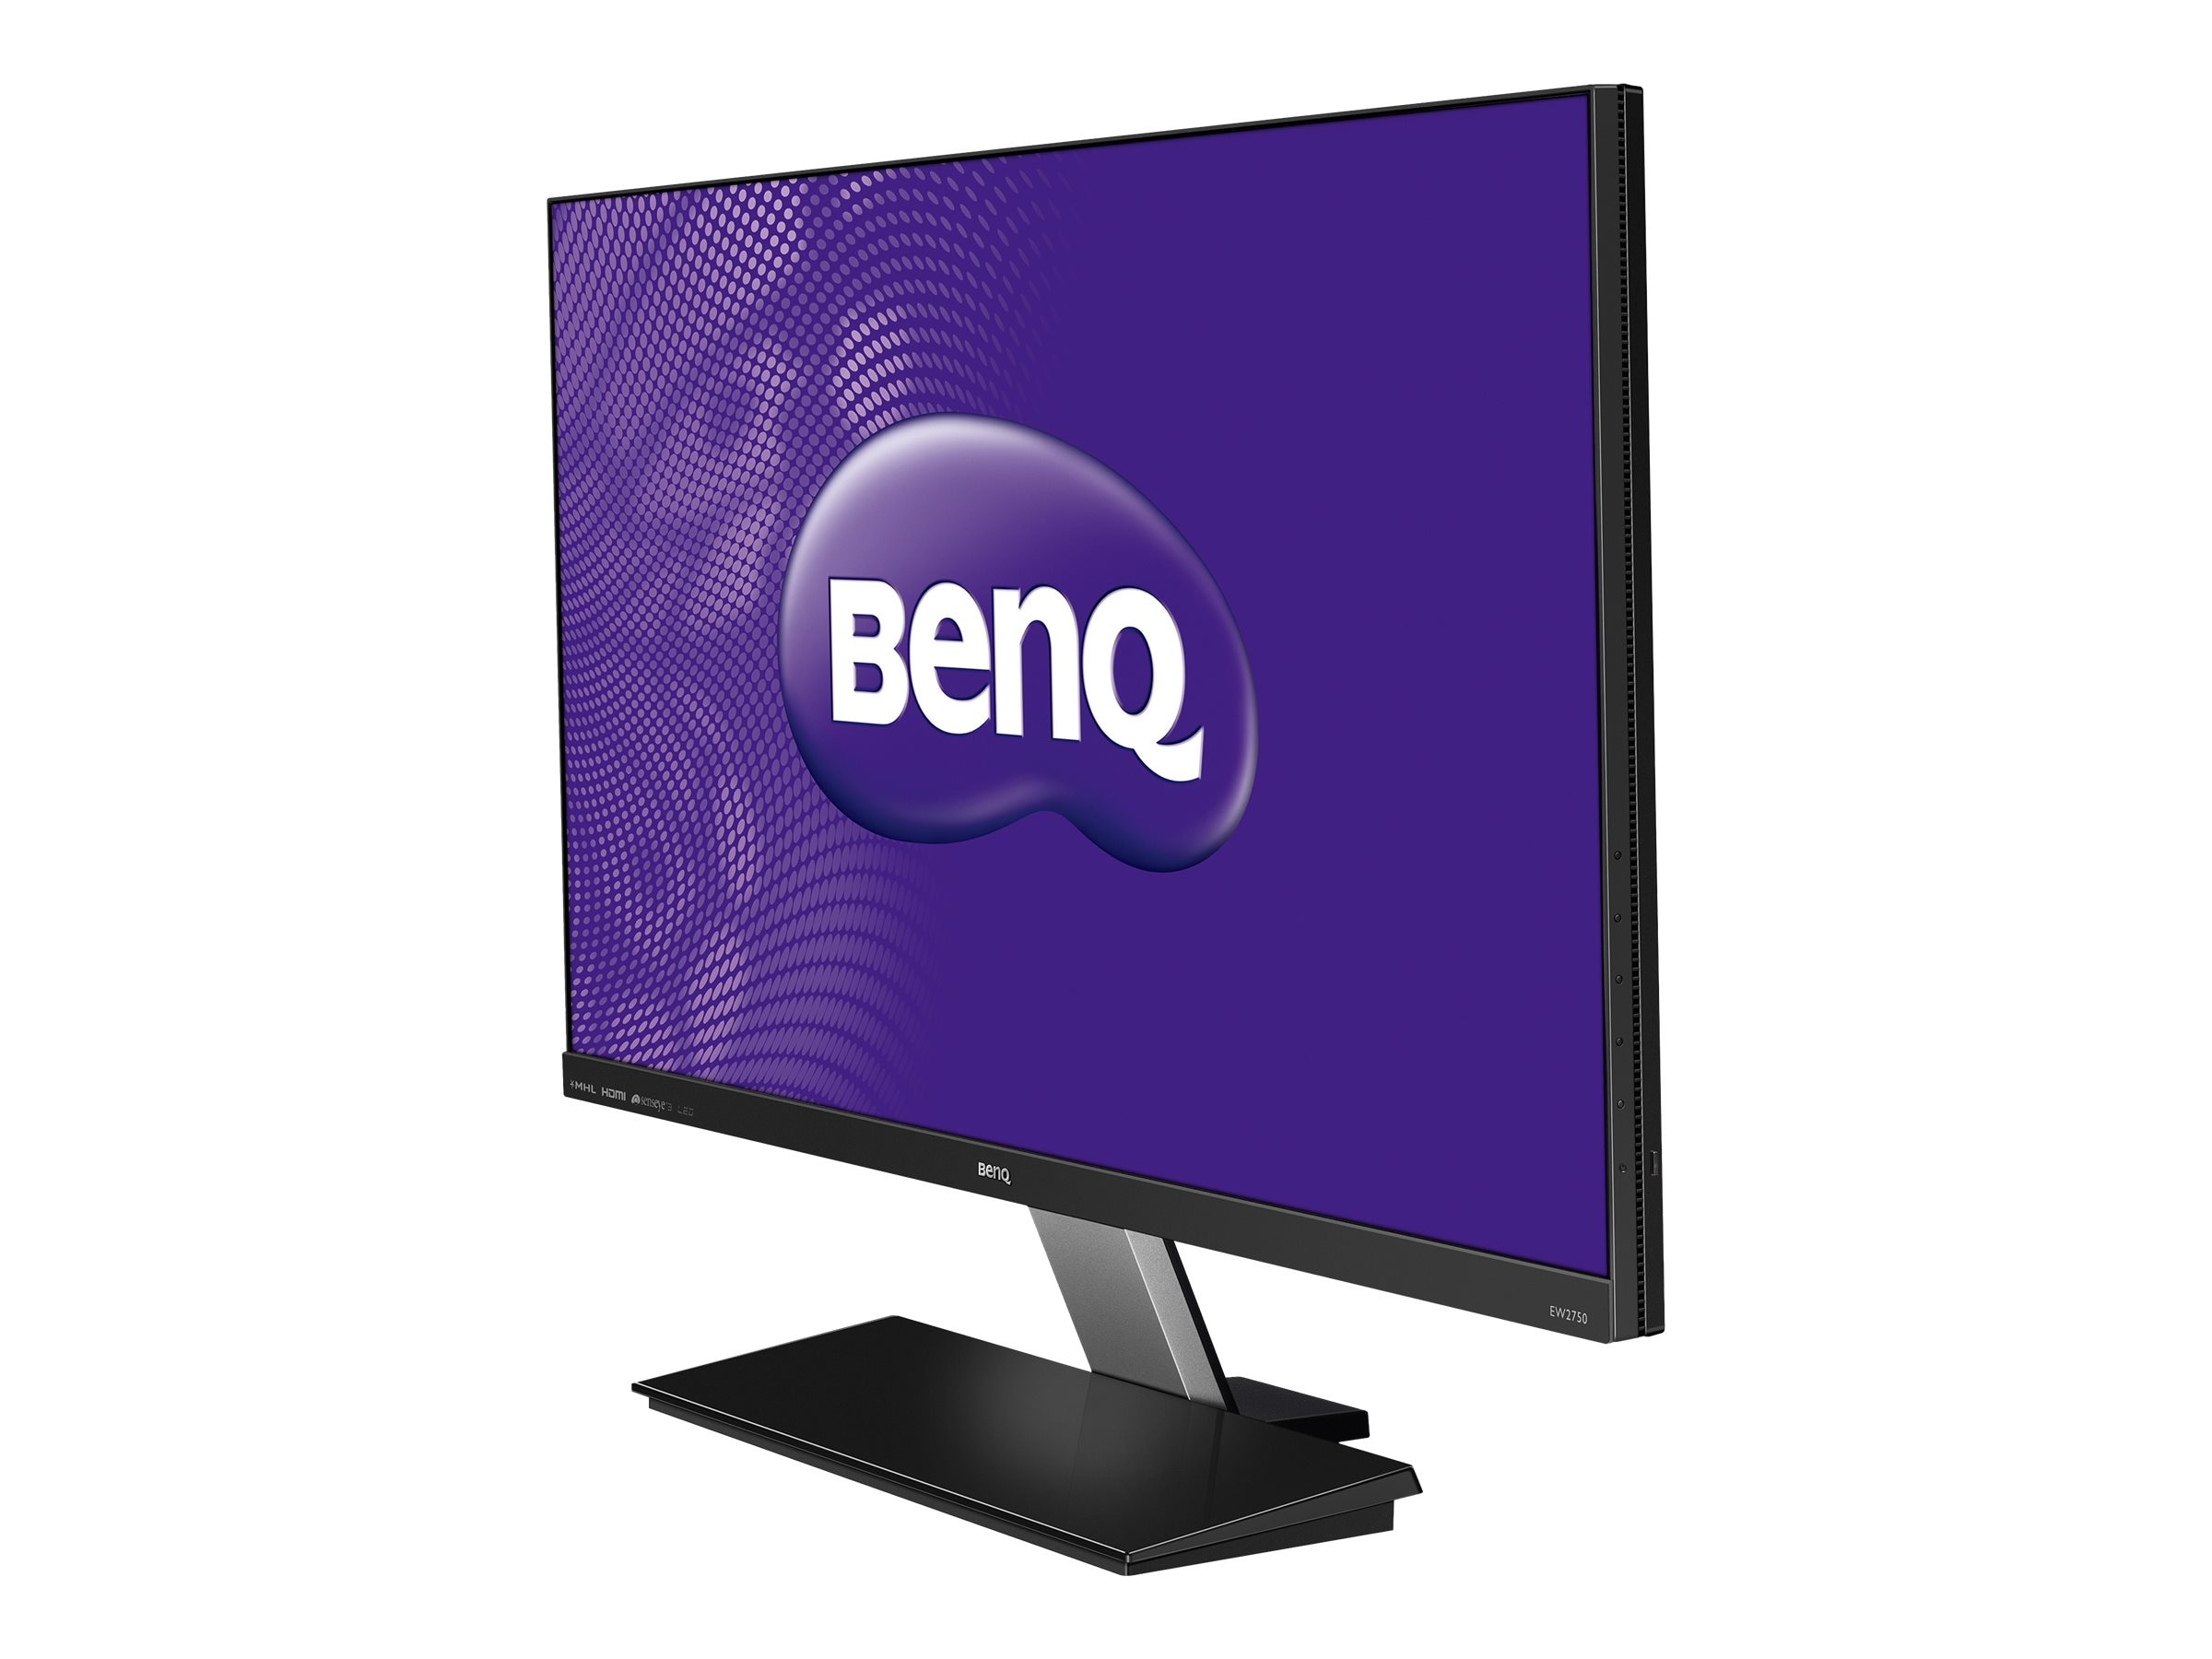 Benq 27 EW2750ZL Full HD LED-LCD Monitor, Black, EW2750ZL